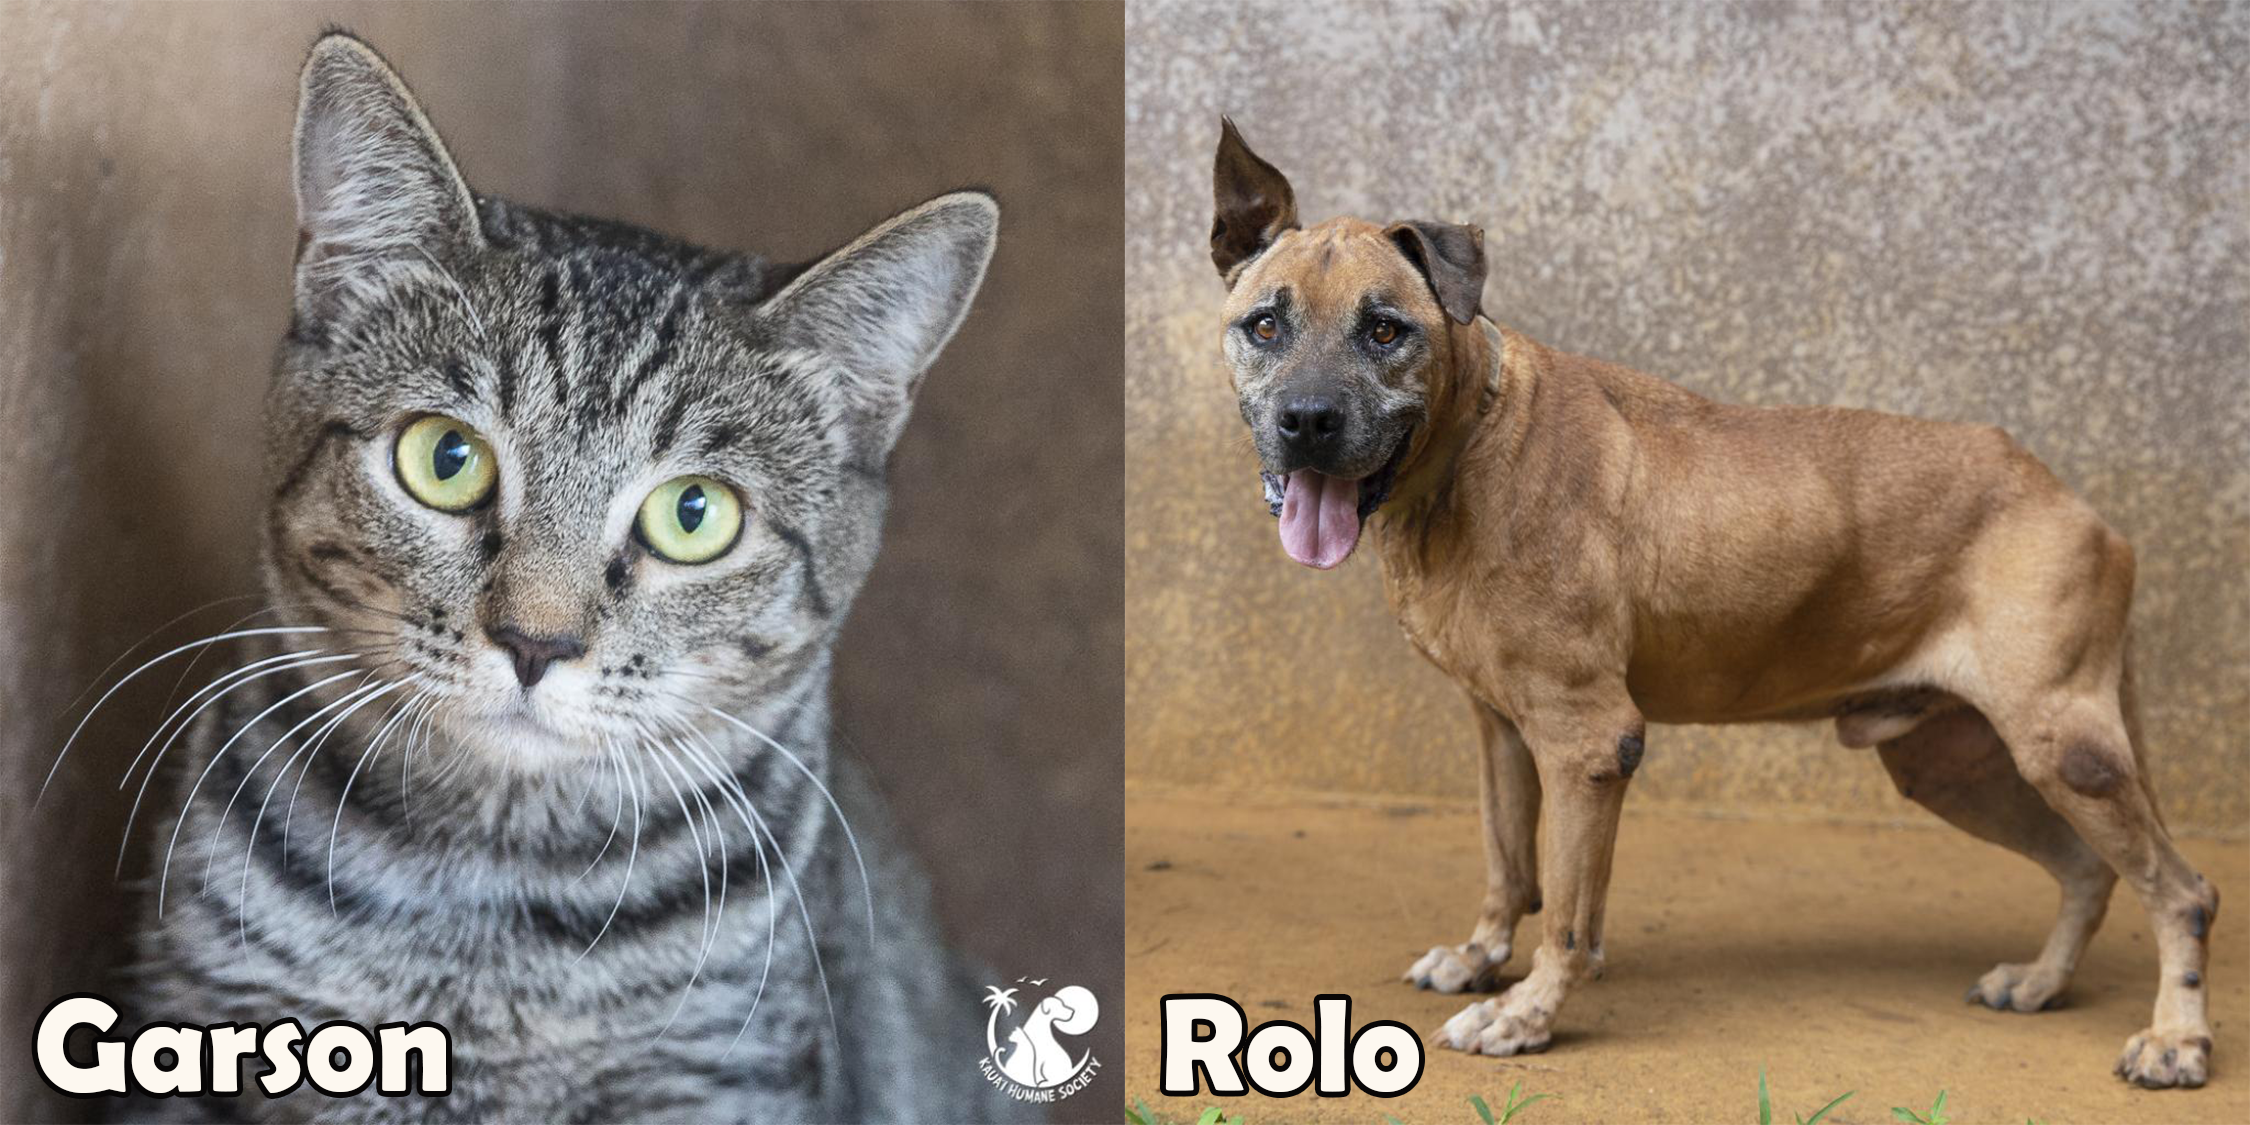 Garson and Rolo are our two featured pets of the month.